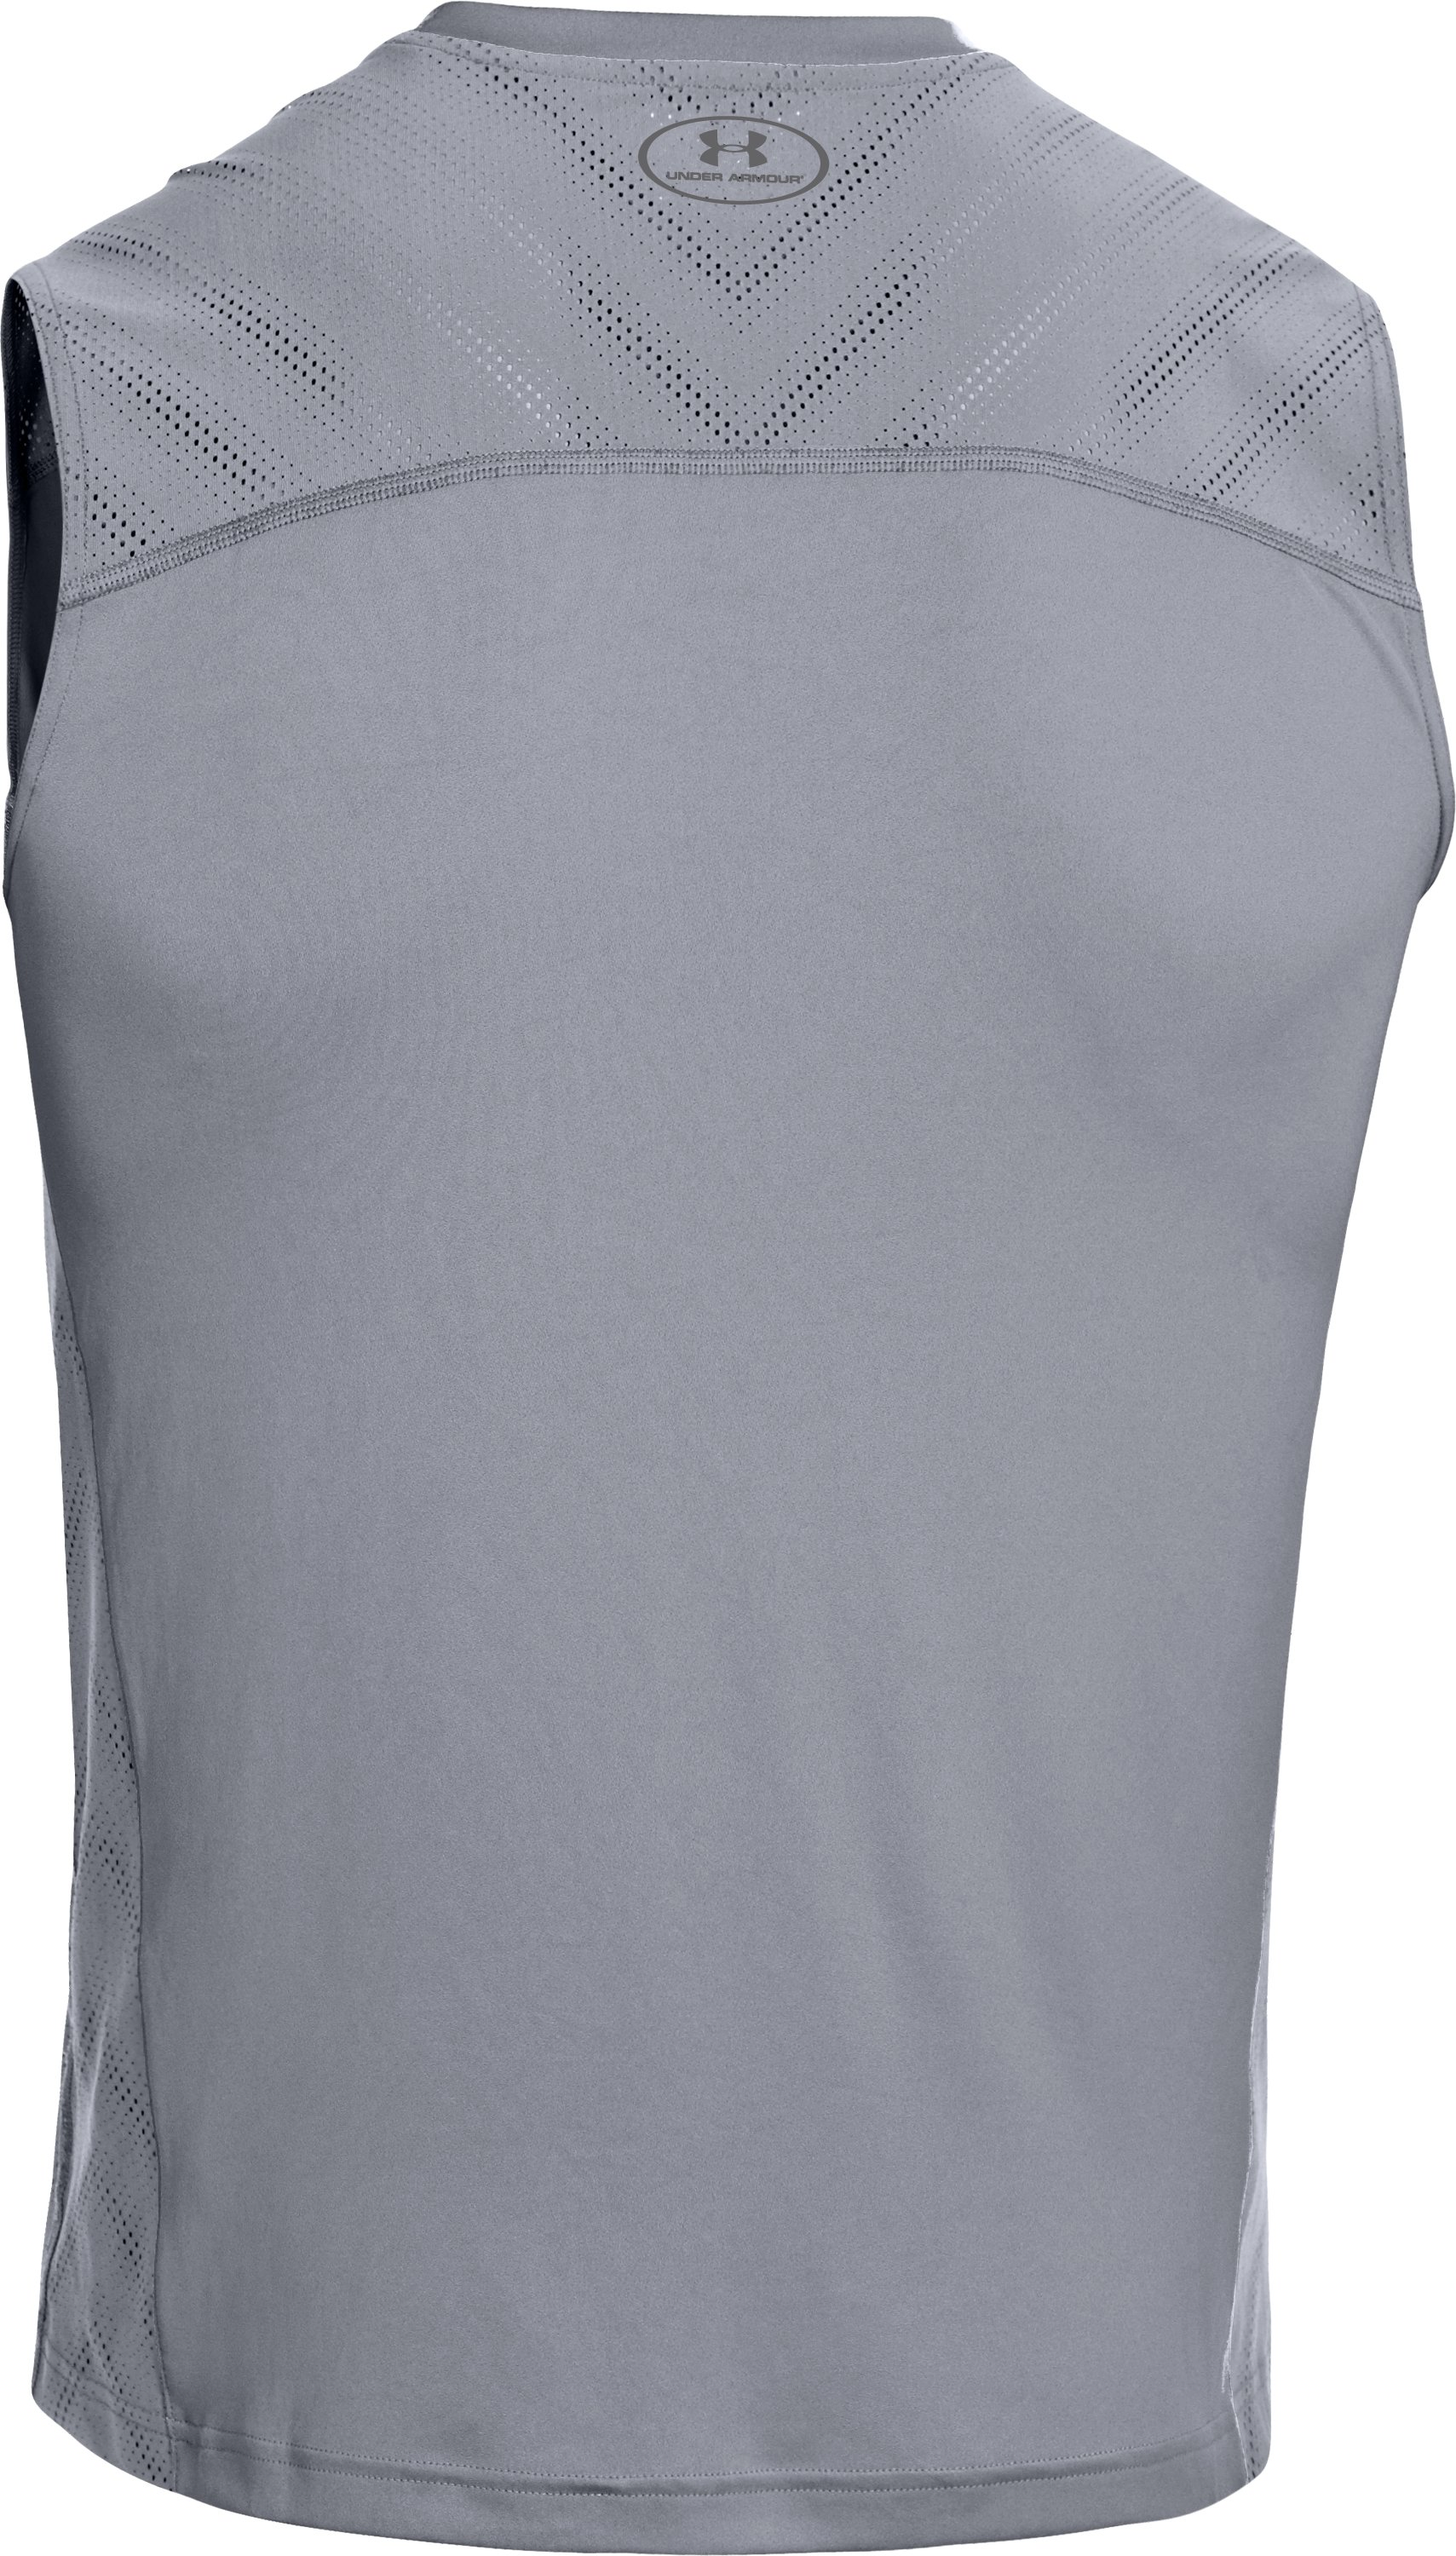 Men's HeatGear® ArmourVent™ Sleeveless Training T-Shirt, Steel